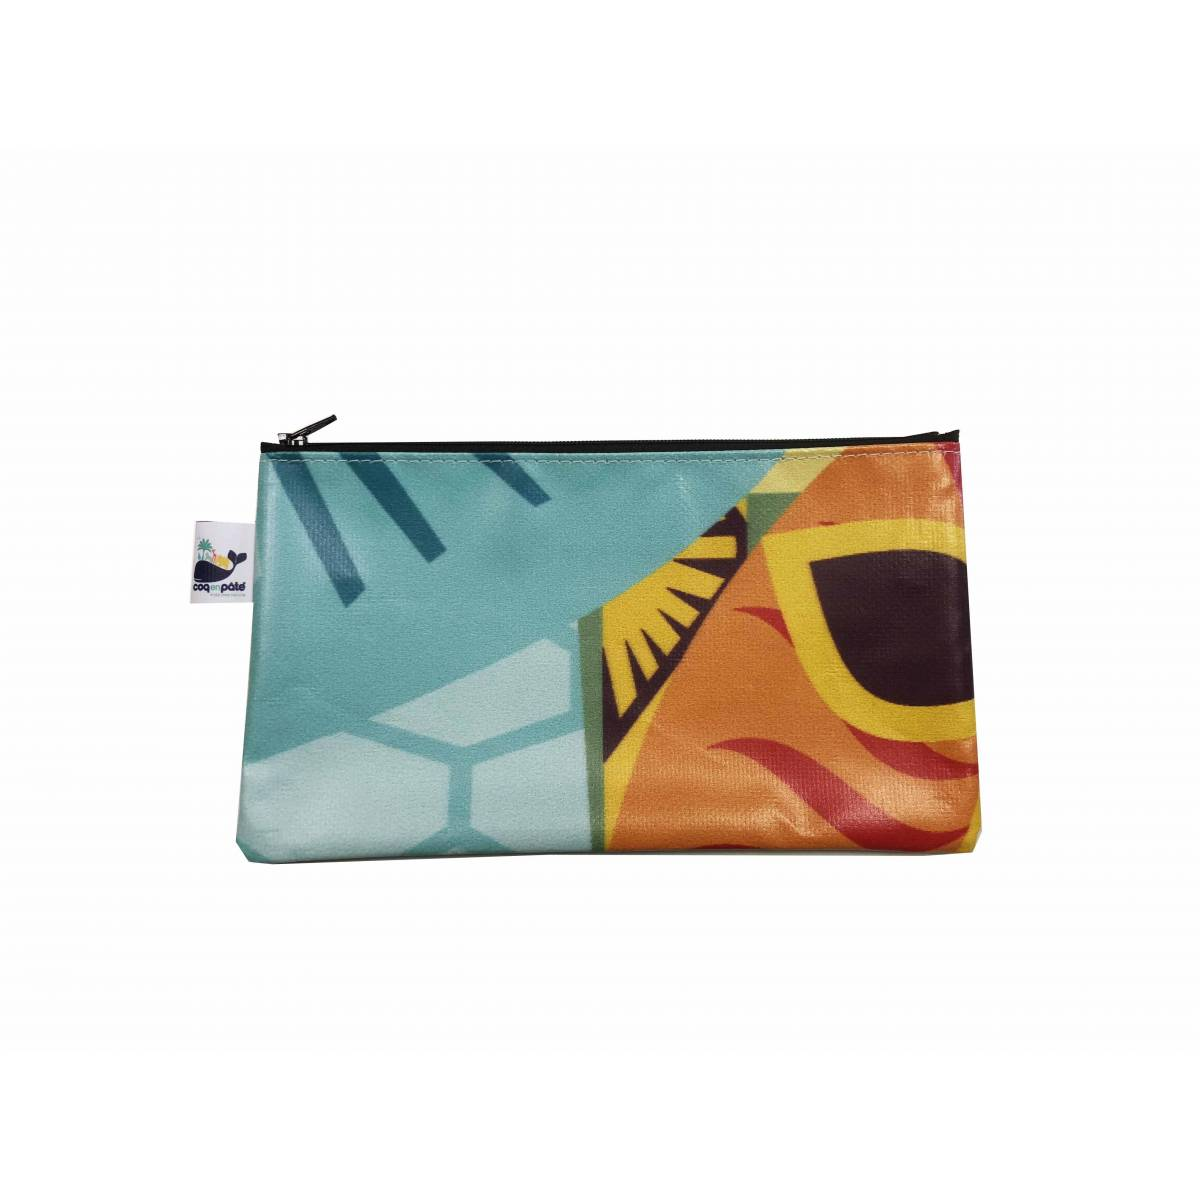 Pencil case - Limited Edition n°20/40